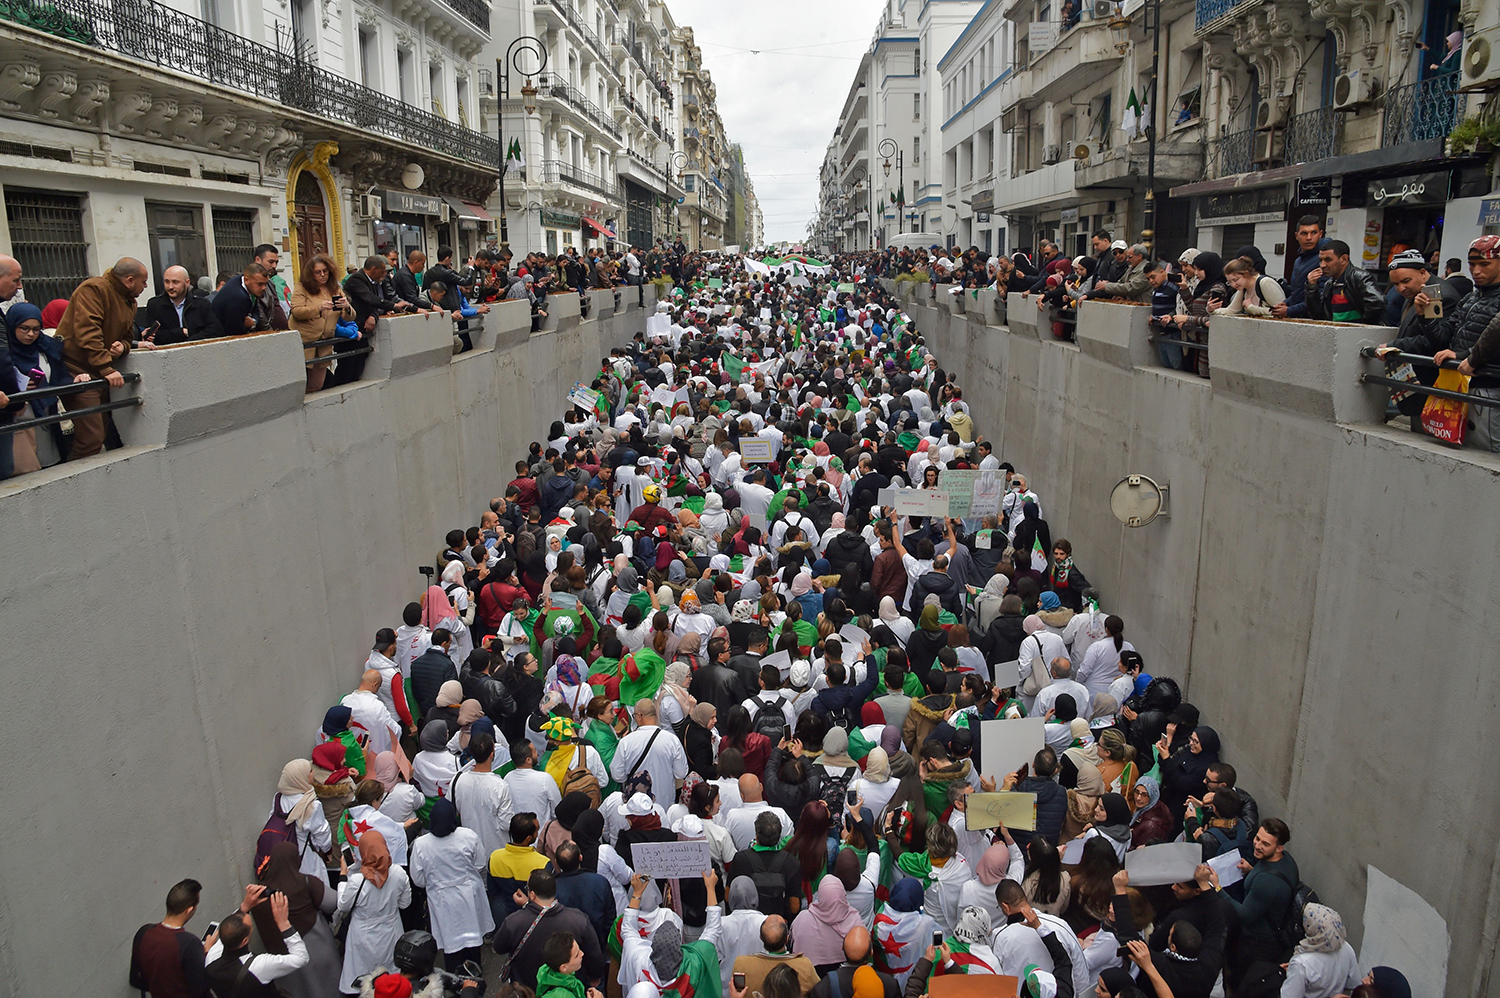 ALGERIA | A crowd of people take part in a demonstration against then-President Abdelaziz Bouteflikain in the capital Algiers  on March 19. RYAD KRAMDI/AFP via Getty Images